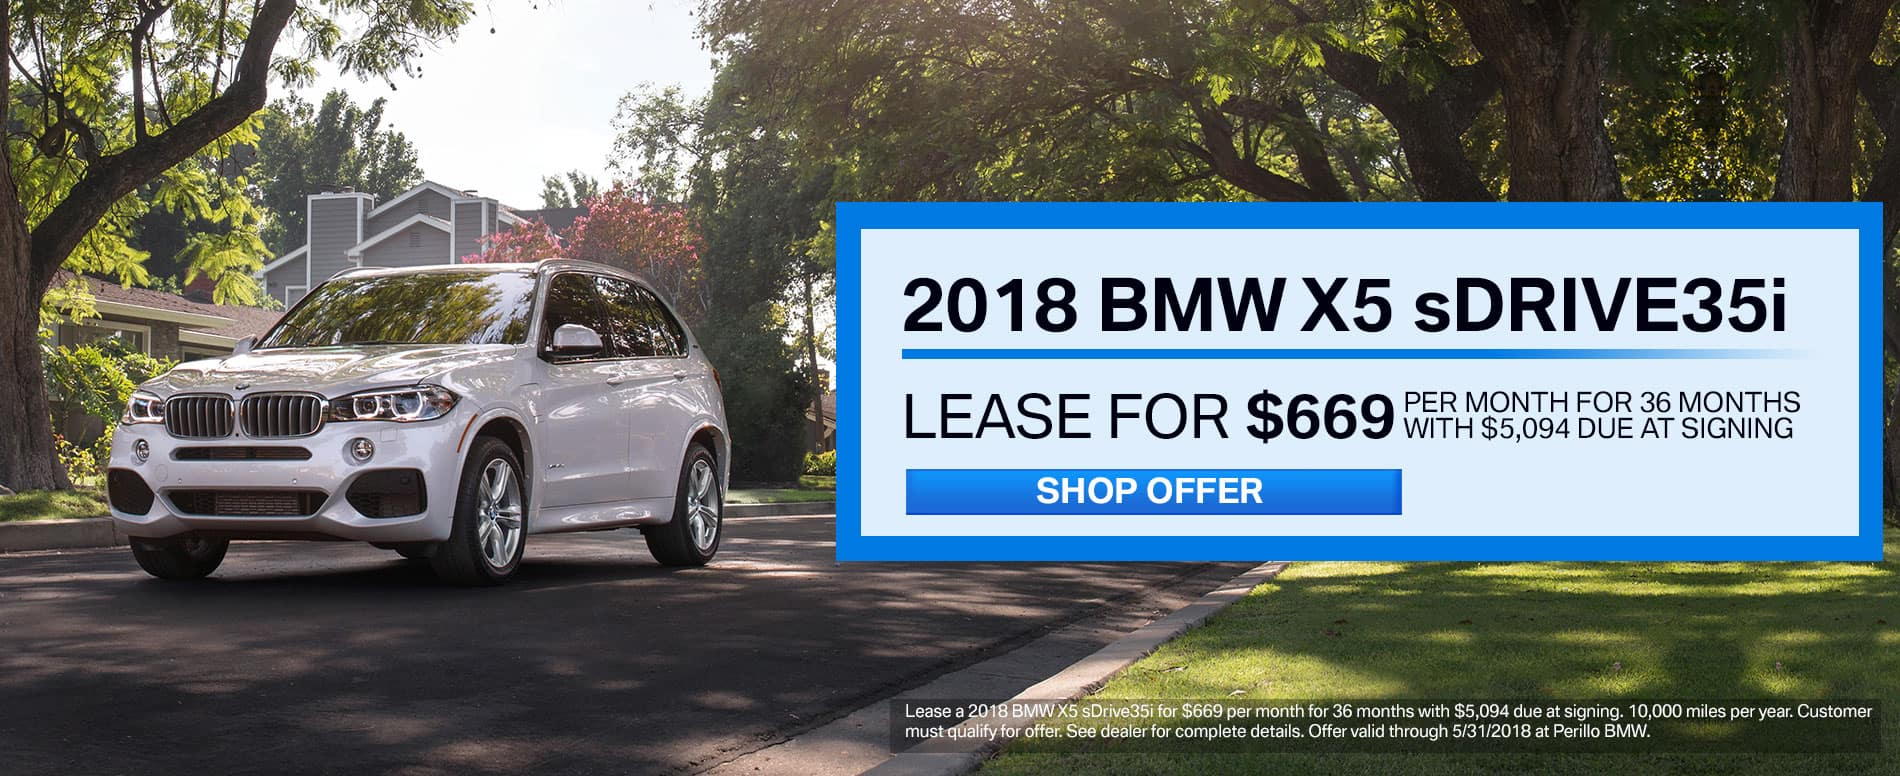 Lease a BMW X5 sDrive35i for $669/mo at Perillo BMW